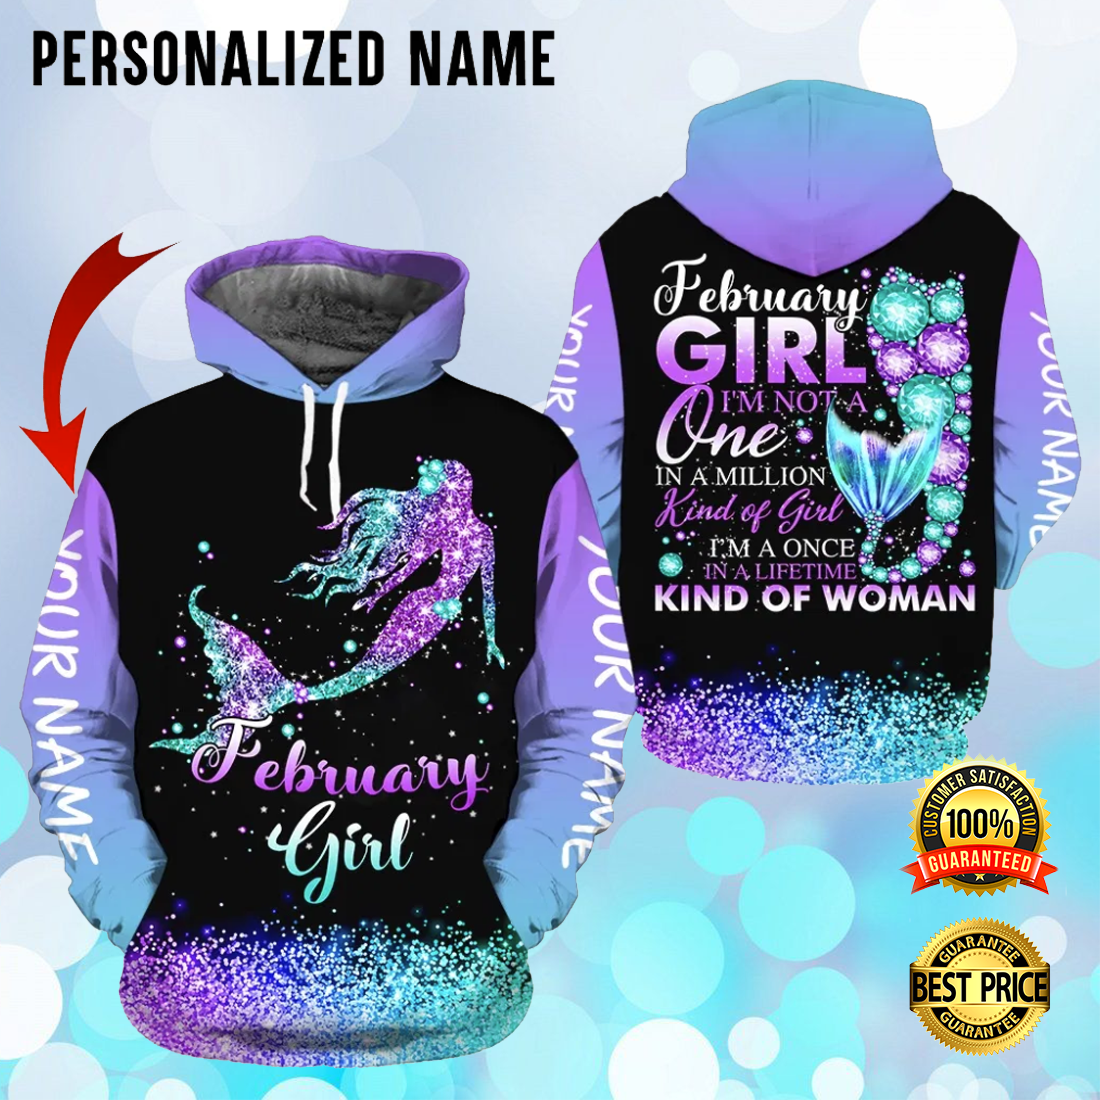 PERSONALIZED MERMAID FEBRUARY GIRL I'M NOT A ONE IN A MILLION KIND OF GIRL ALL OVER PRINTED 3D HOODIE 5